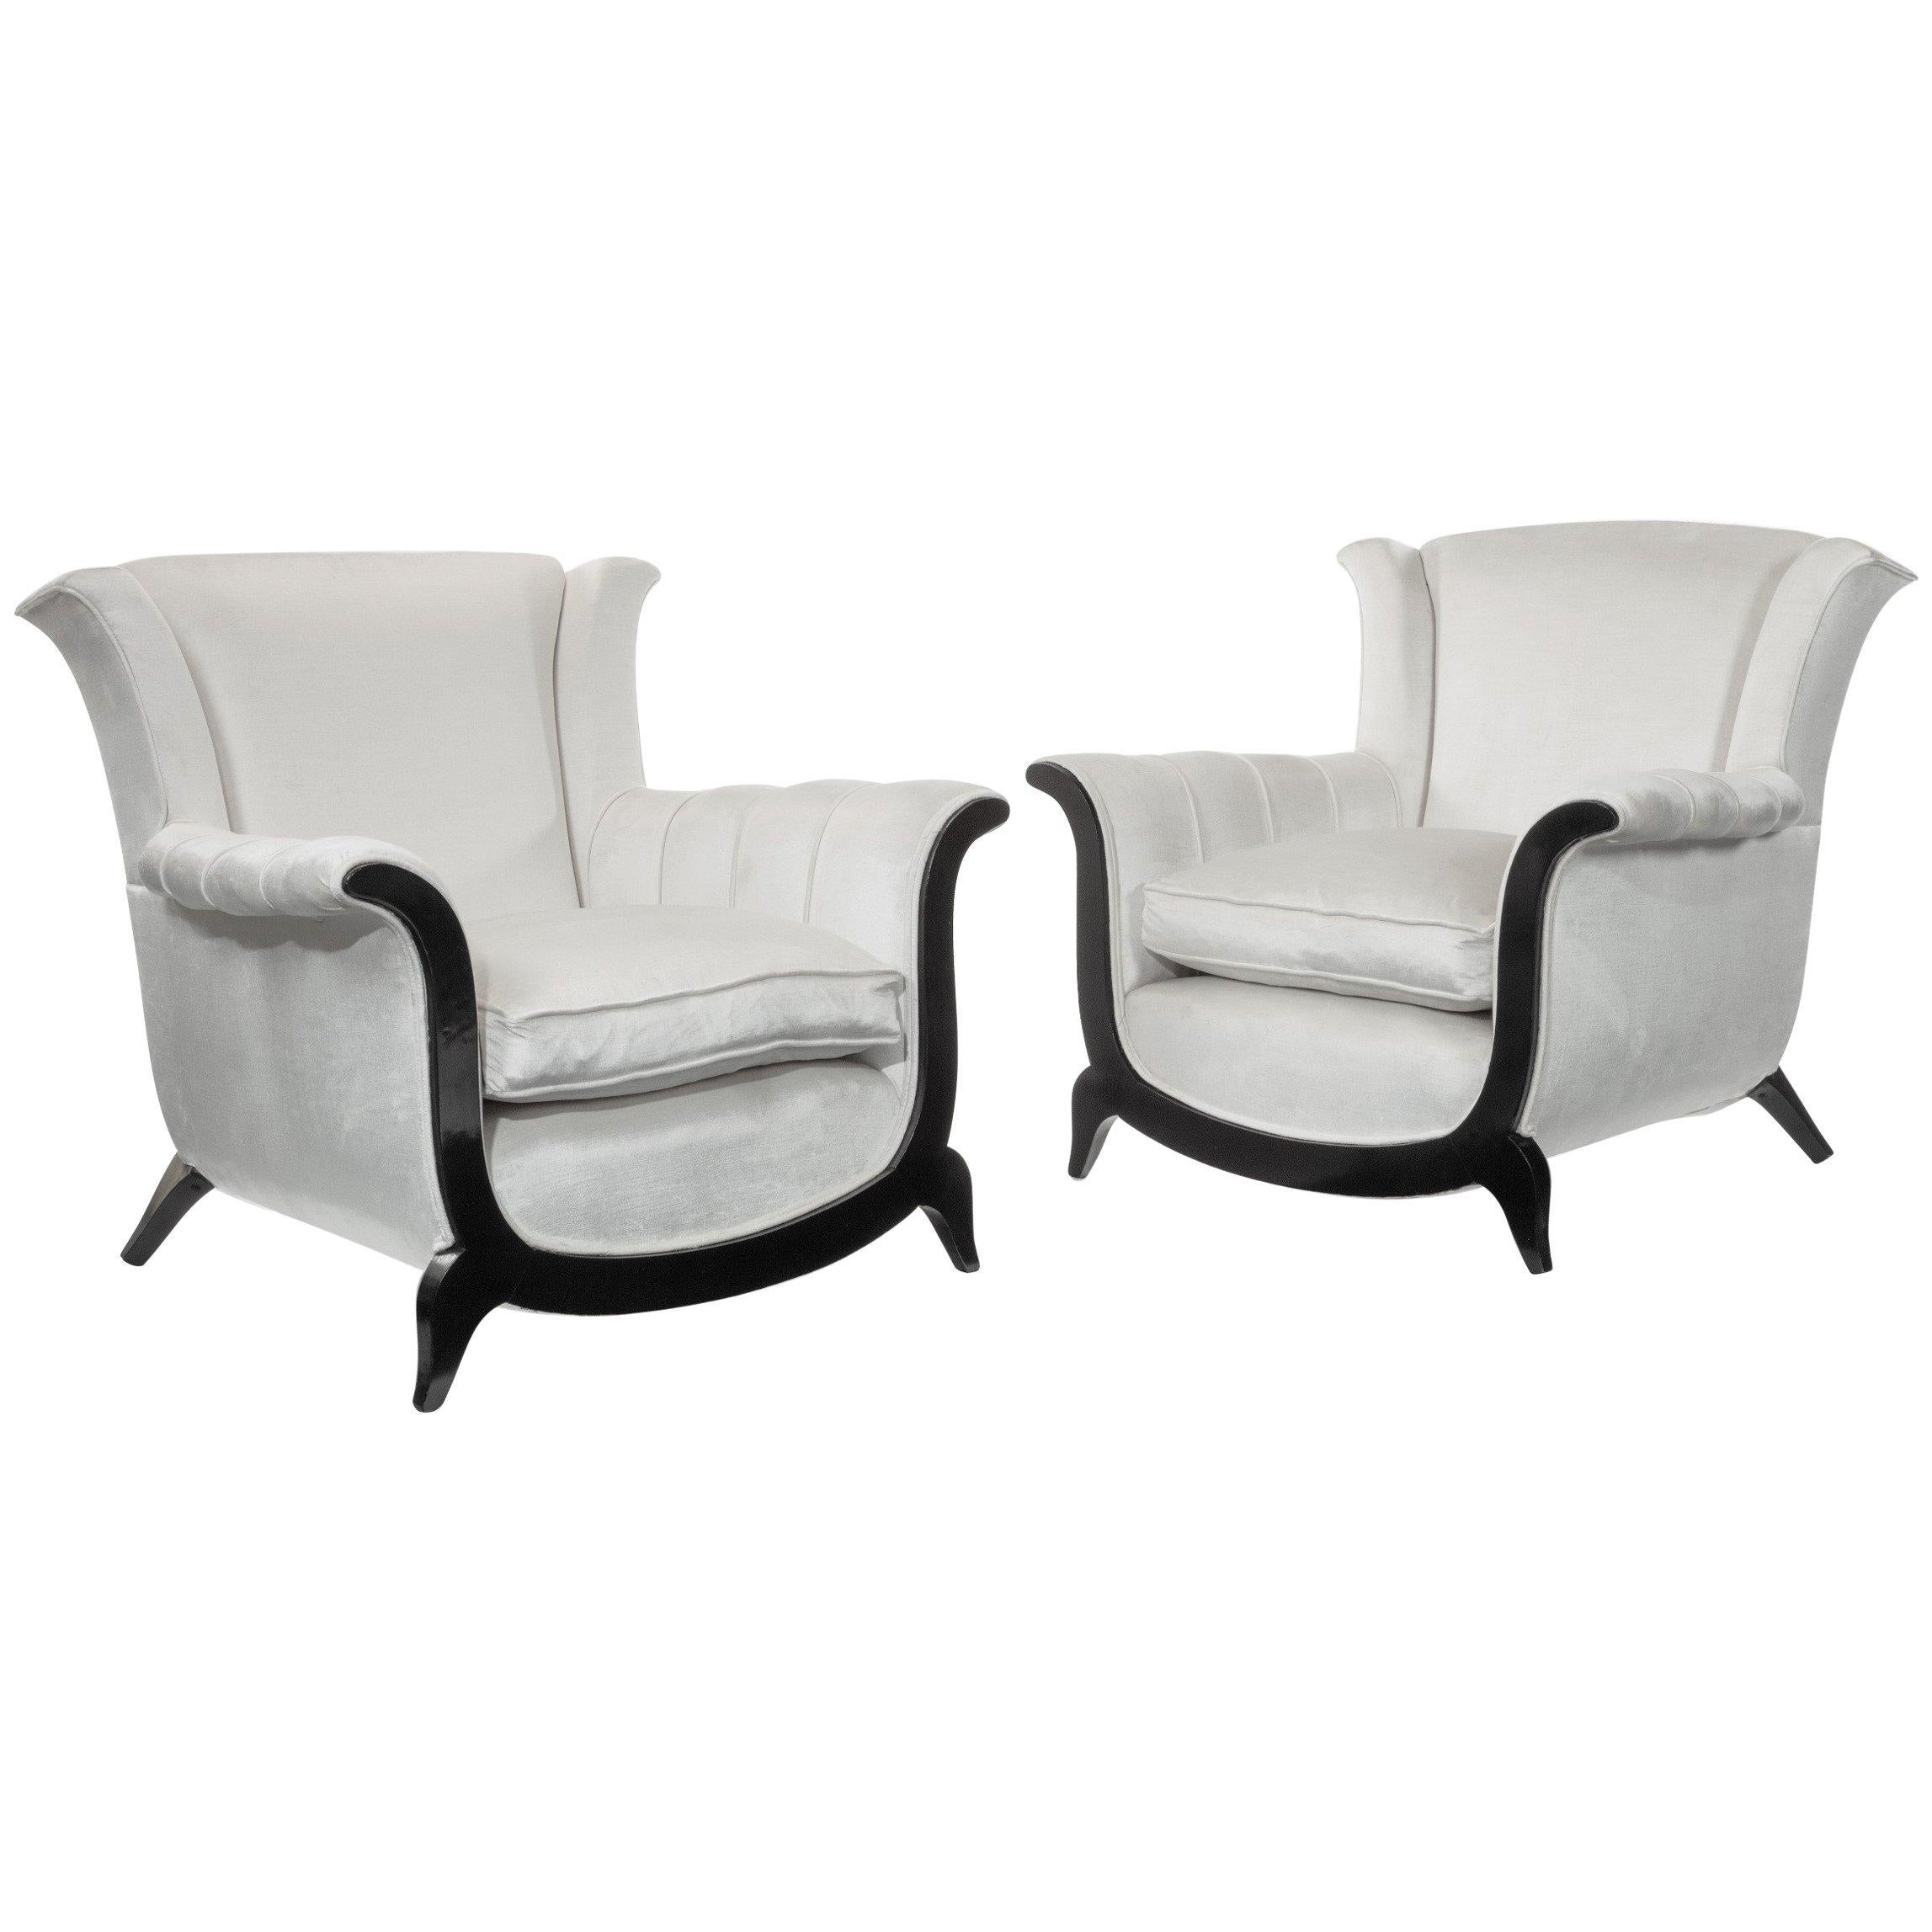 Unusual Pair of Mid-20th Century Armchairs in a Crushed Velvet